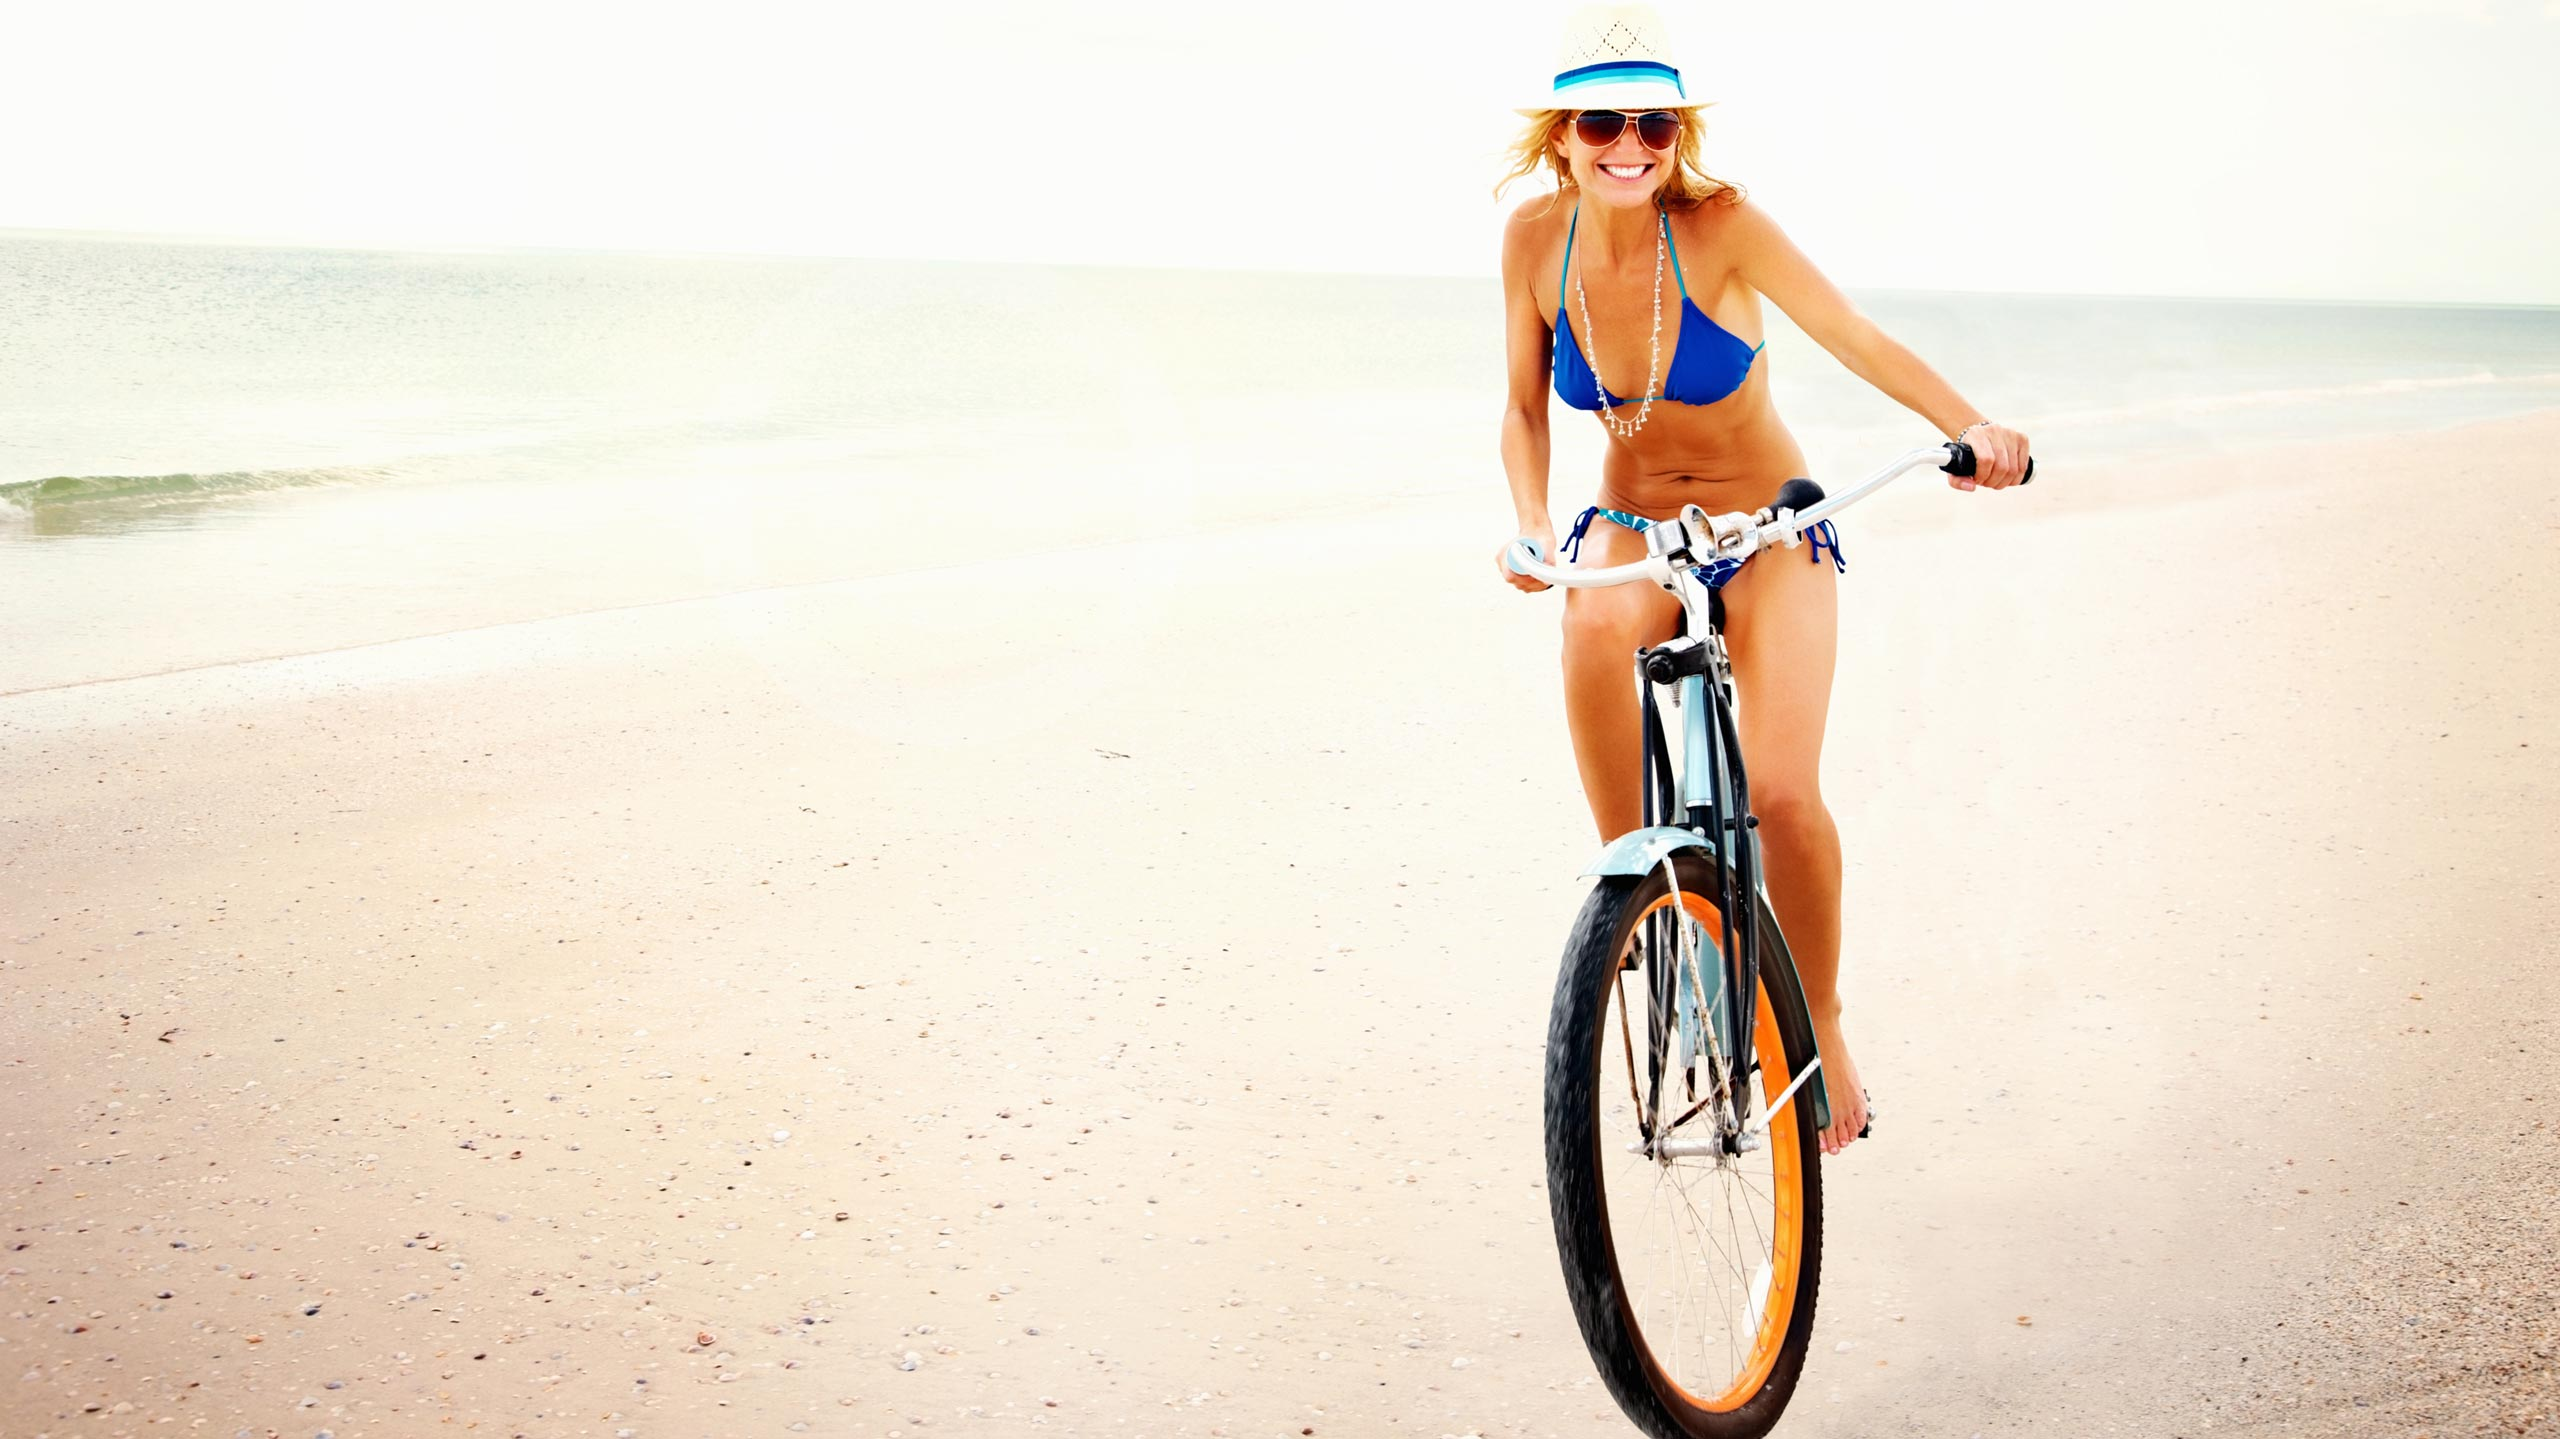 Girl cycling on the beach carefree